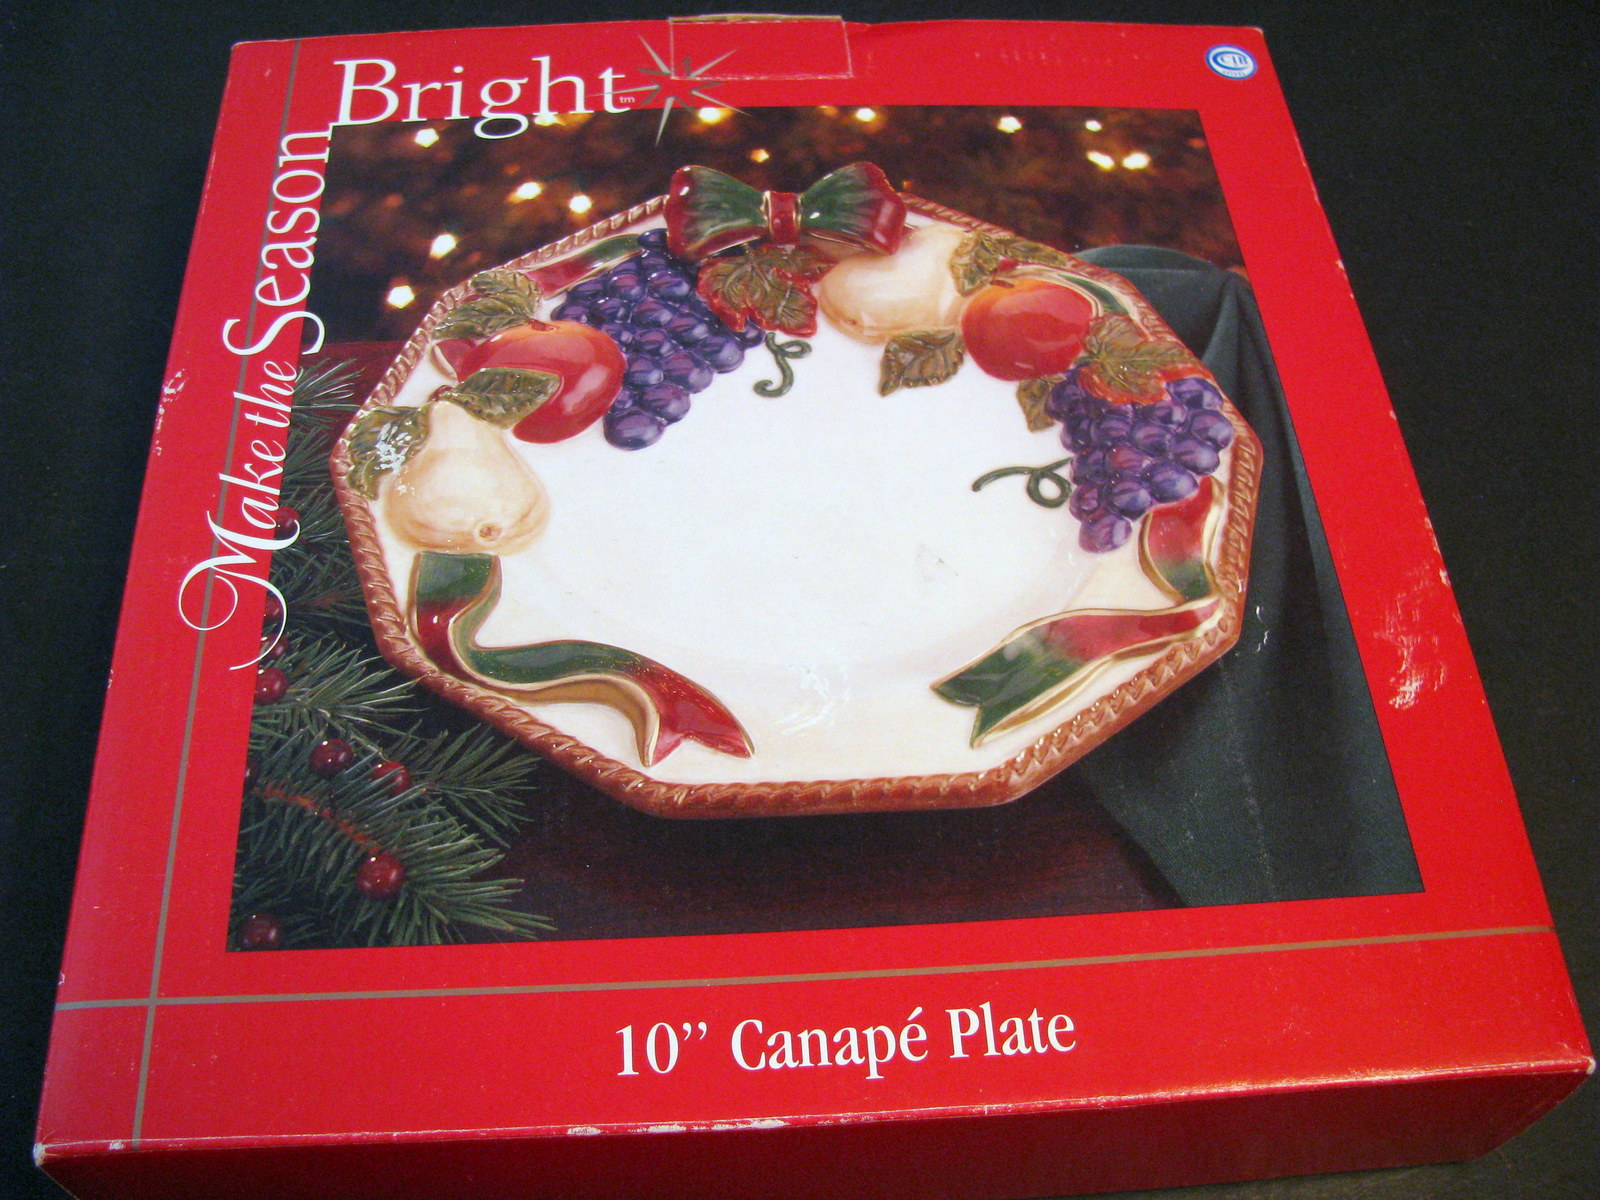 Make the season bright 10 canape plate new in box for Christmas canape plates